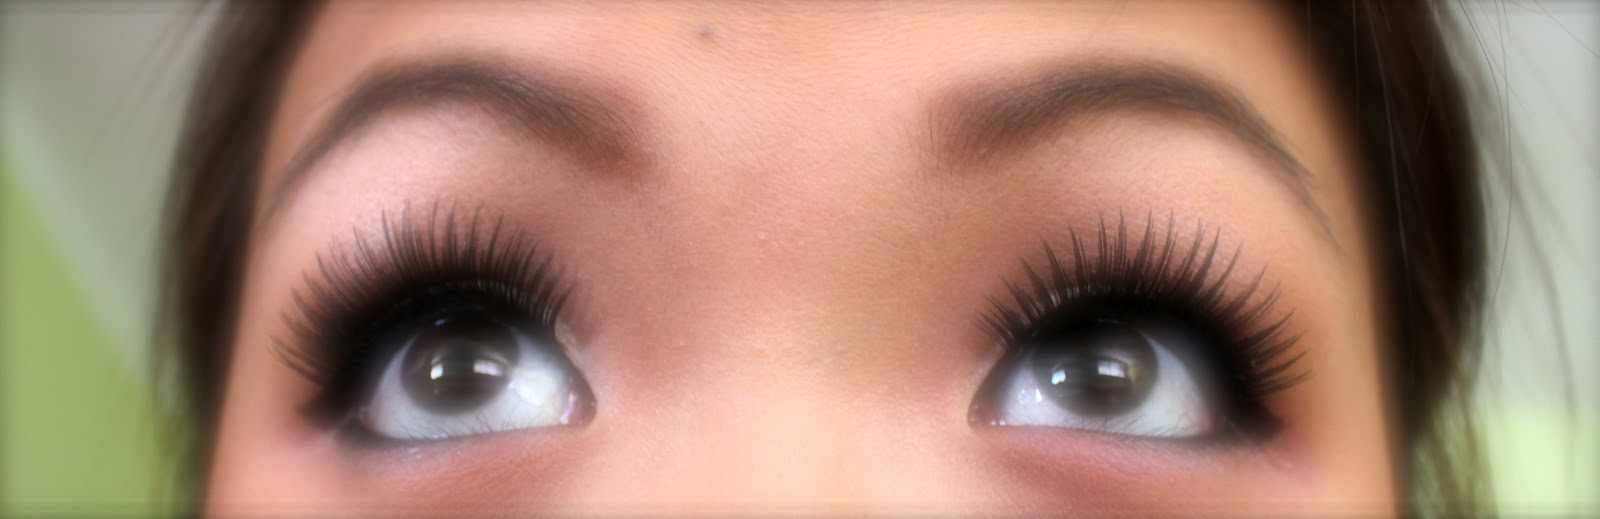 448d9bb505d Hey everyone! Happy Friday! I recently went to Sally's Beauty Supply for  some false lashes and I picked up the Ardell Natural's in #131. They were a  little ...